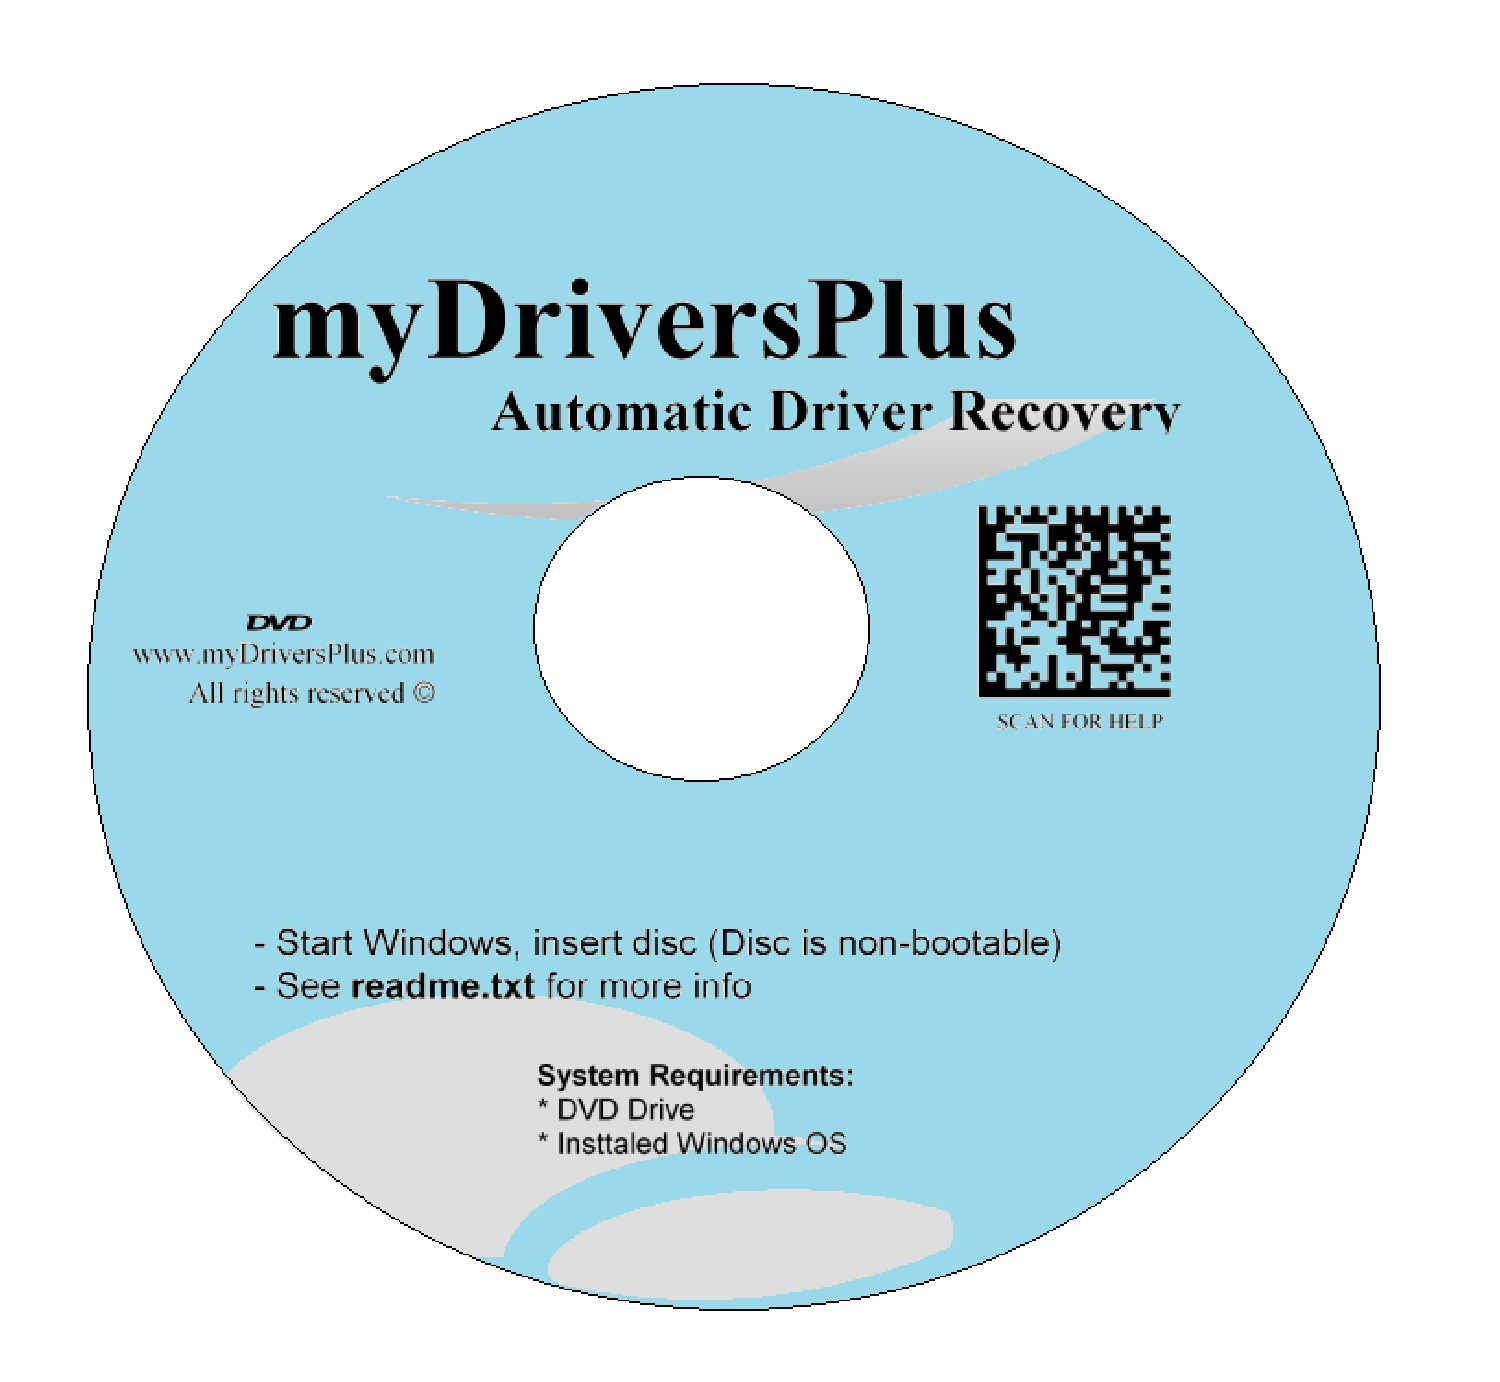 Compaq Presario 900LA Drivers Recovery Restore Resource Utilities Software with Automatic One-Click Installer Unattended for Internet, Wi-Fi, Ethernet, Video, Sound, Audio, USB, Devices, Chipset ...(